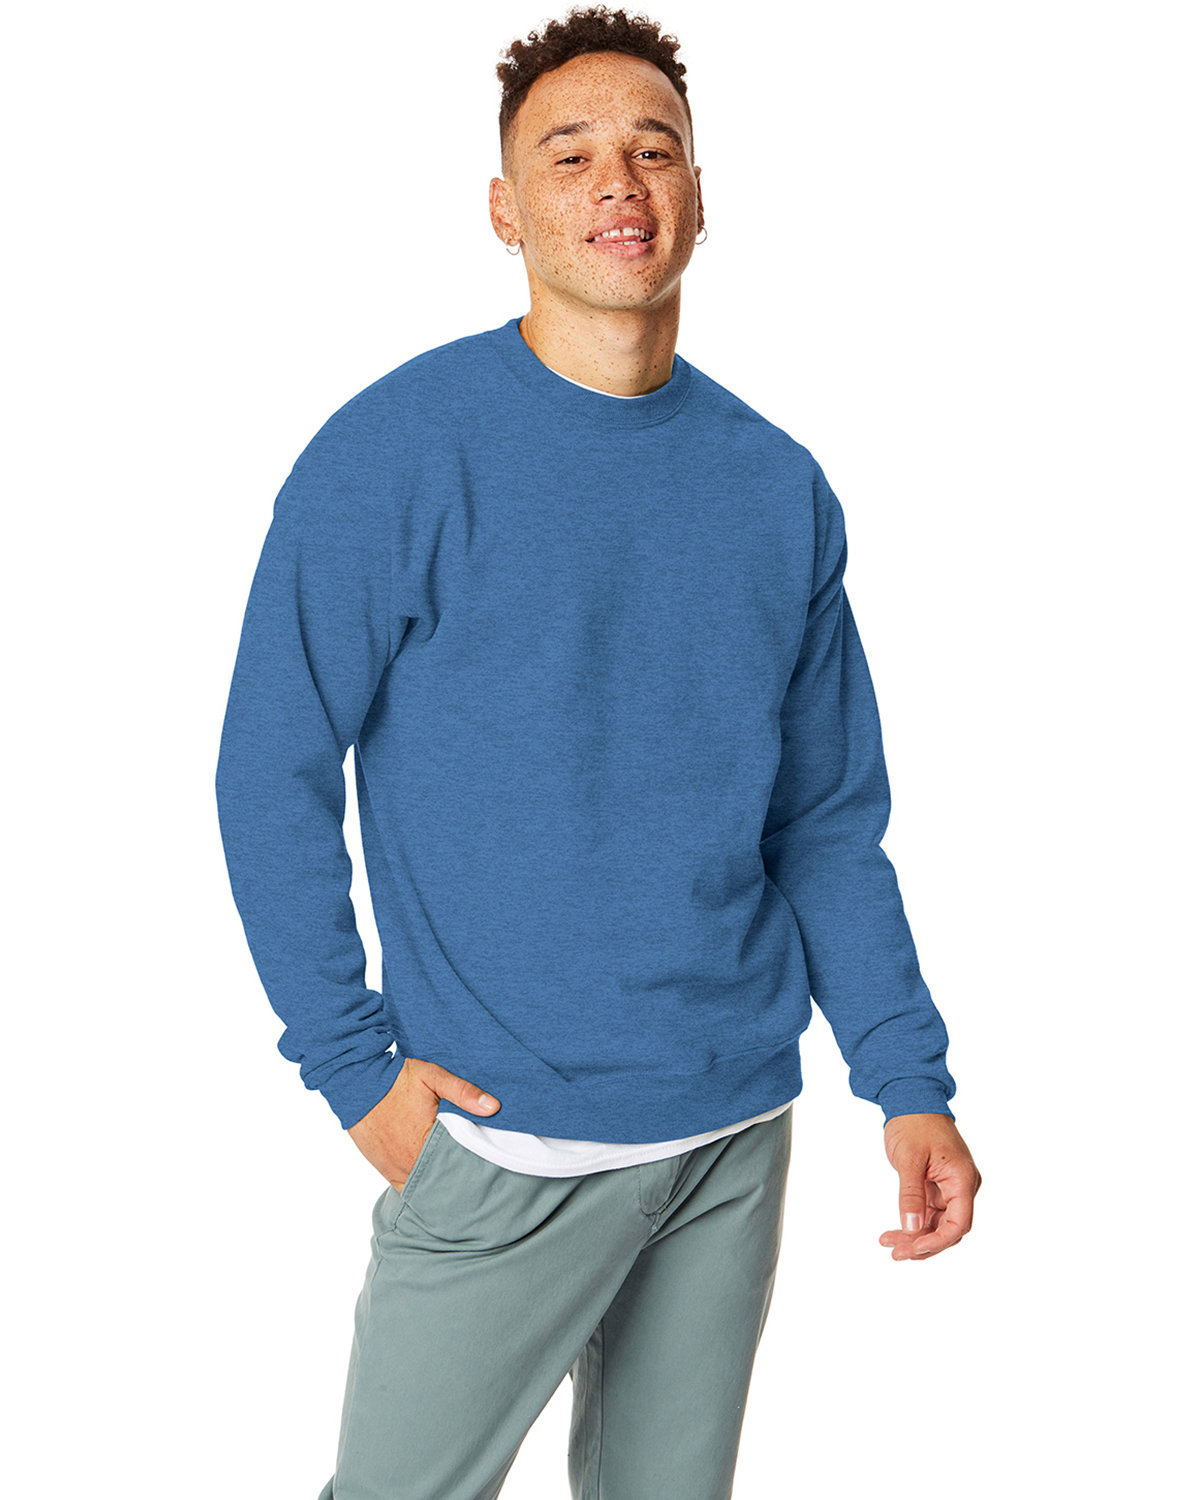 Hanes Unisex 7.8 oz., Ecosmart® 50/50 Crewneck Sweatshirt HEATHER BLUE